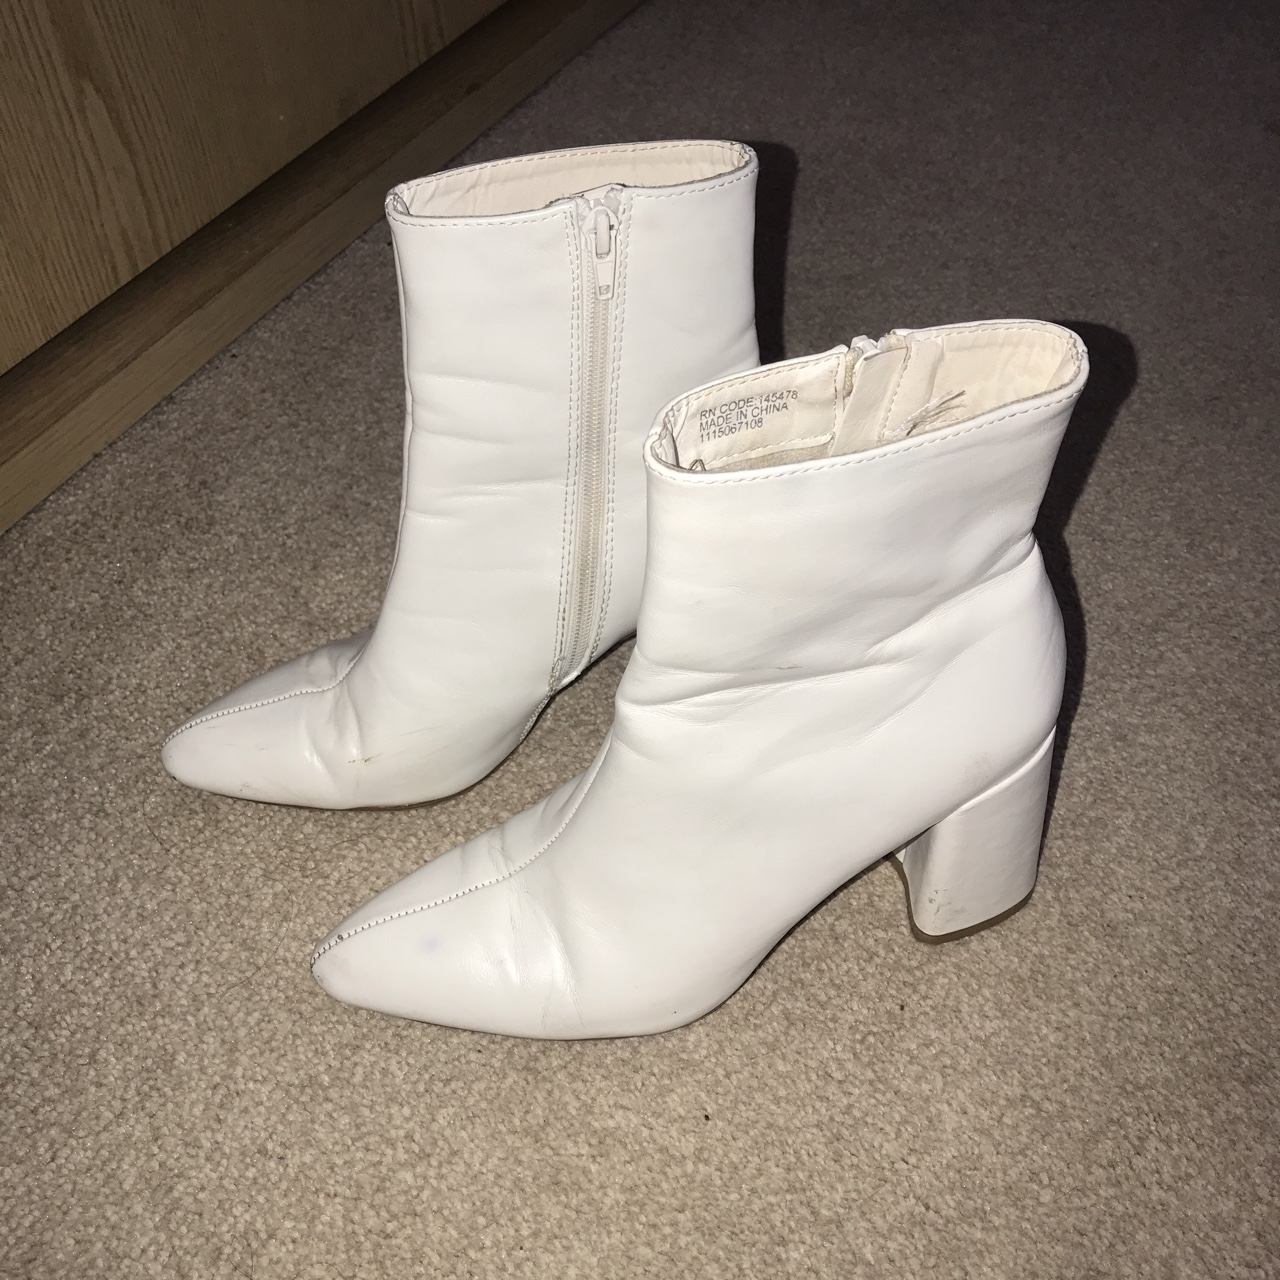 White ankle boots size 4 sooo nice on